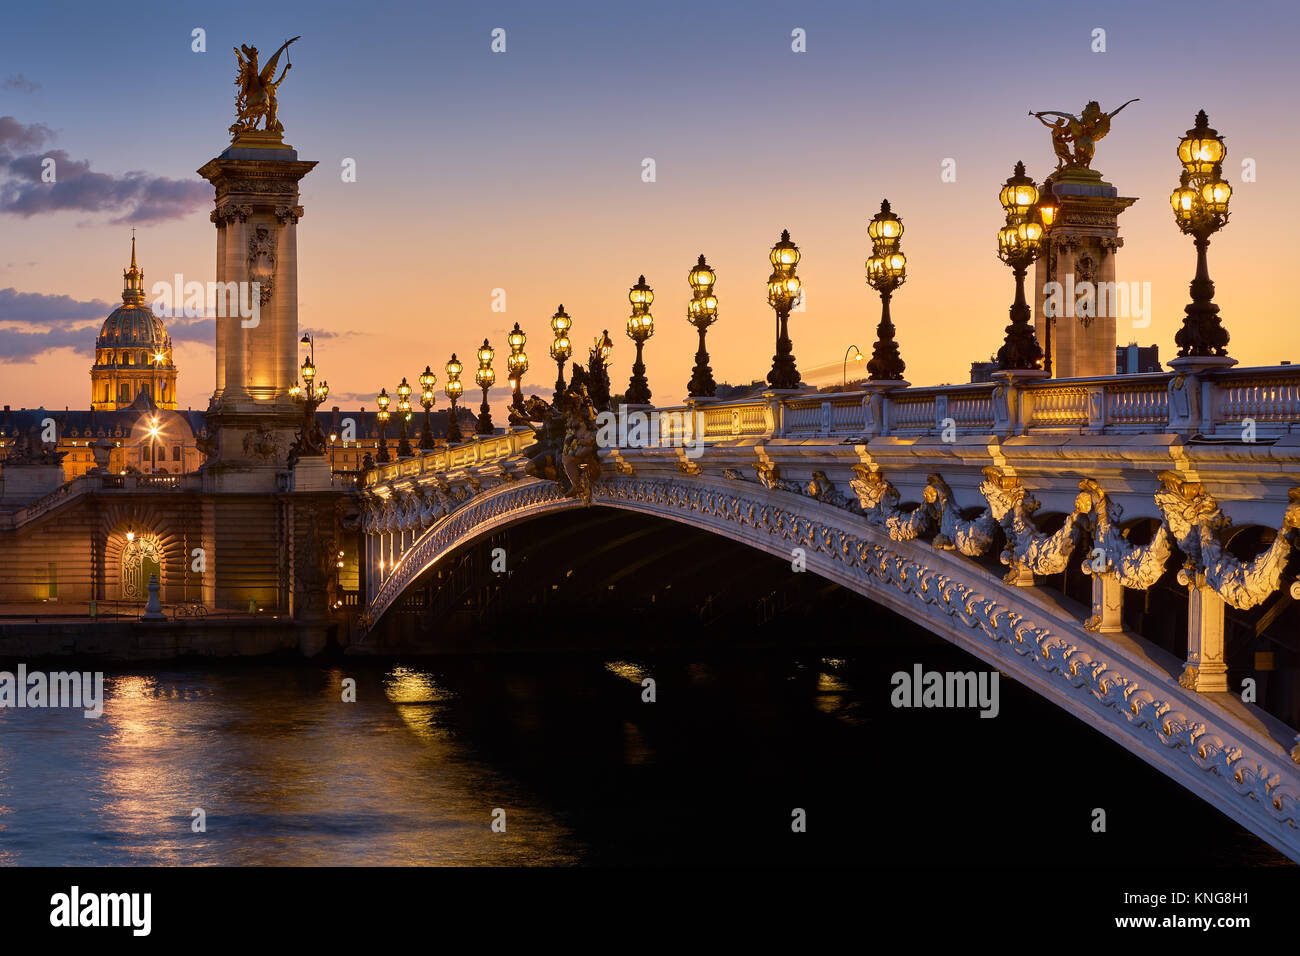 Pont Alexandre III Bridge and illuminated lamp posts at sunset with view of the Invalides. 7th Arrondissement, Paris, Stock Photo